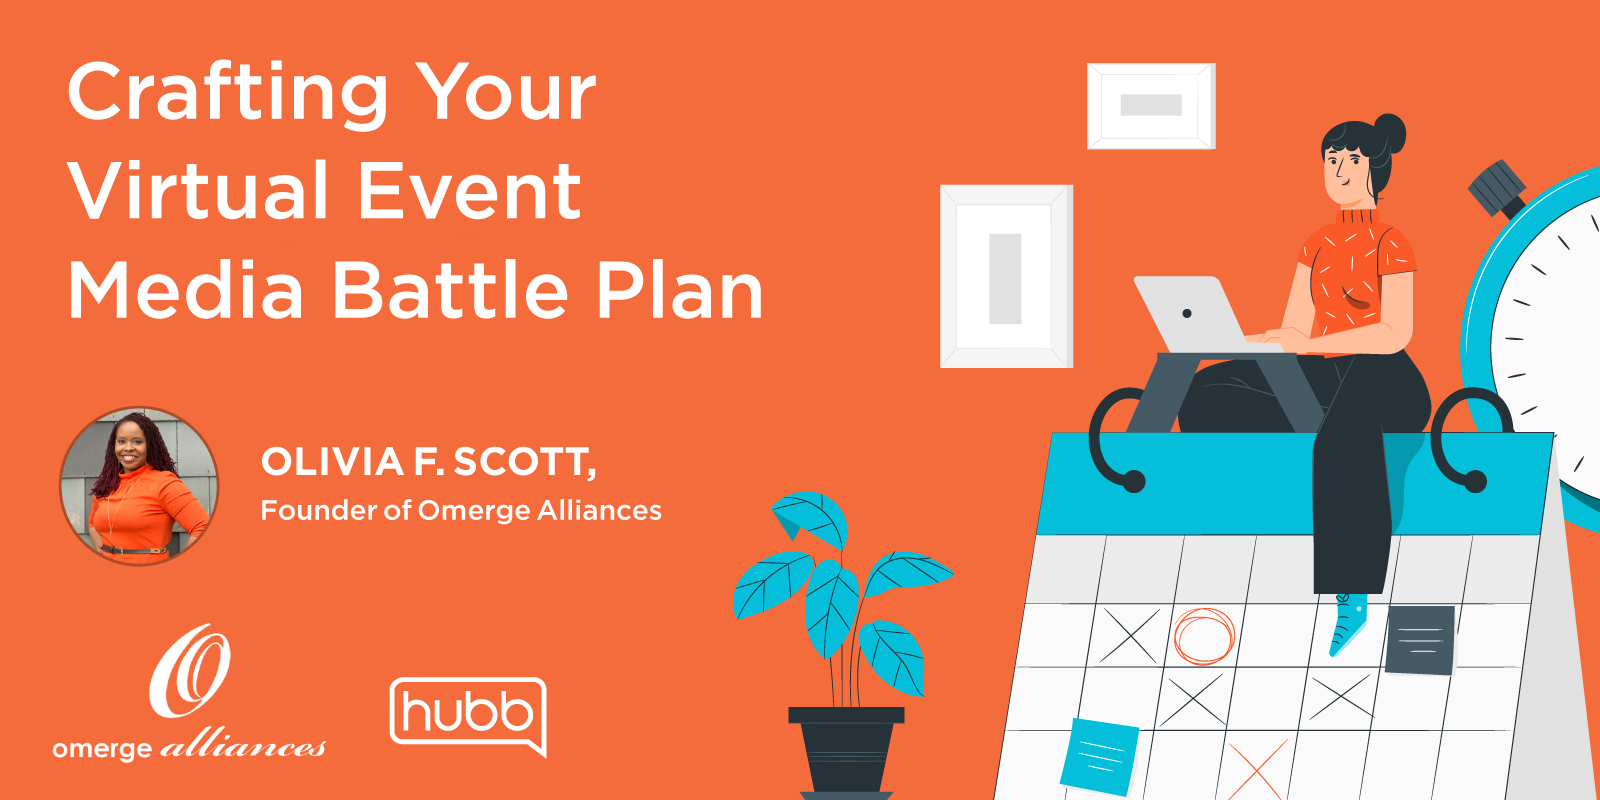 Crafting Your Virtual Event Media Battle Plan